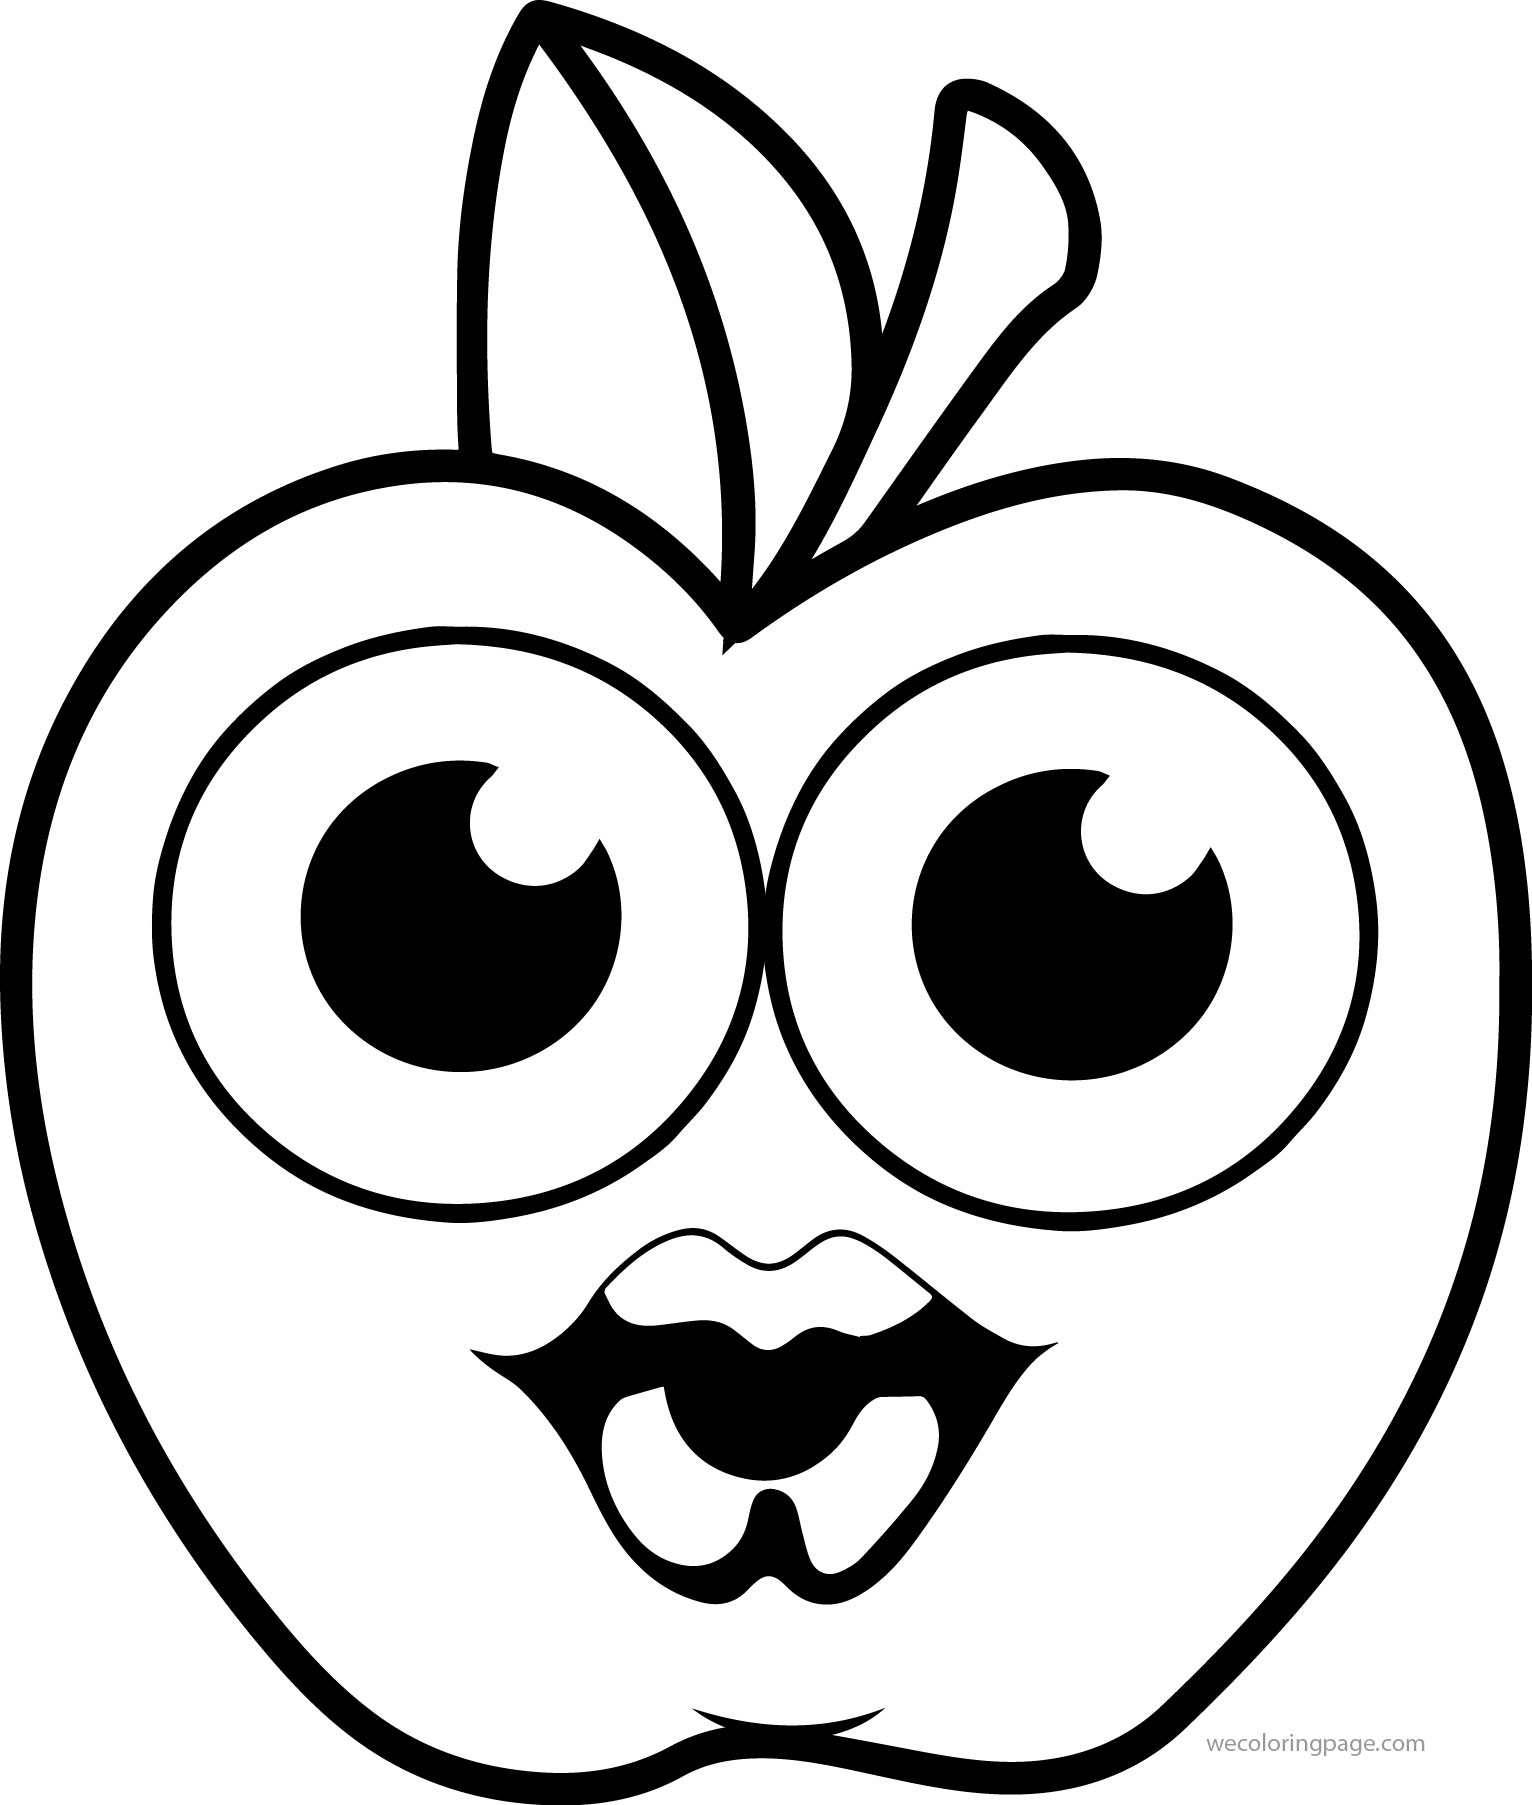 Girl Cartoon Apple Kiss Coloring Pages